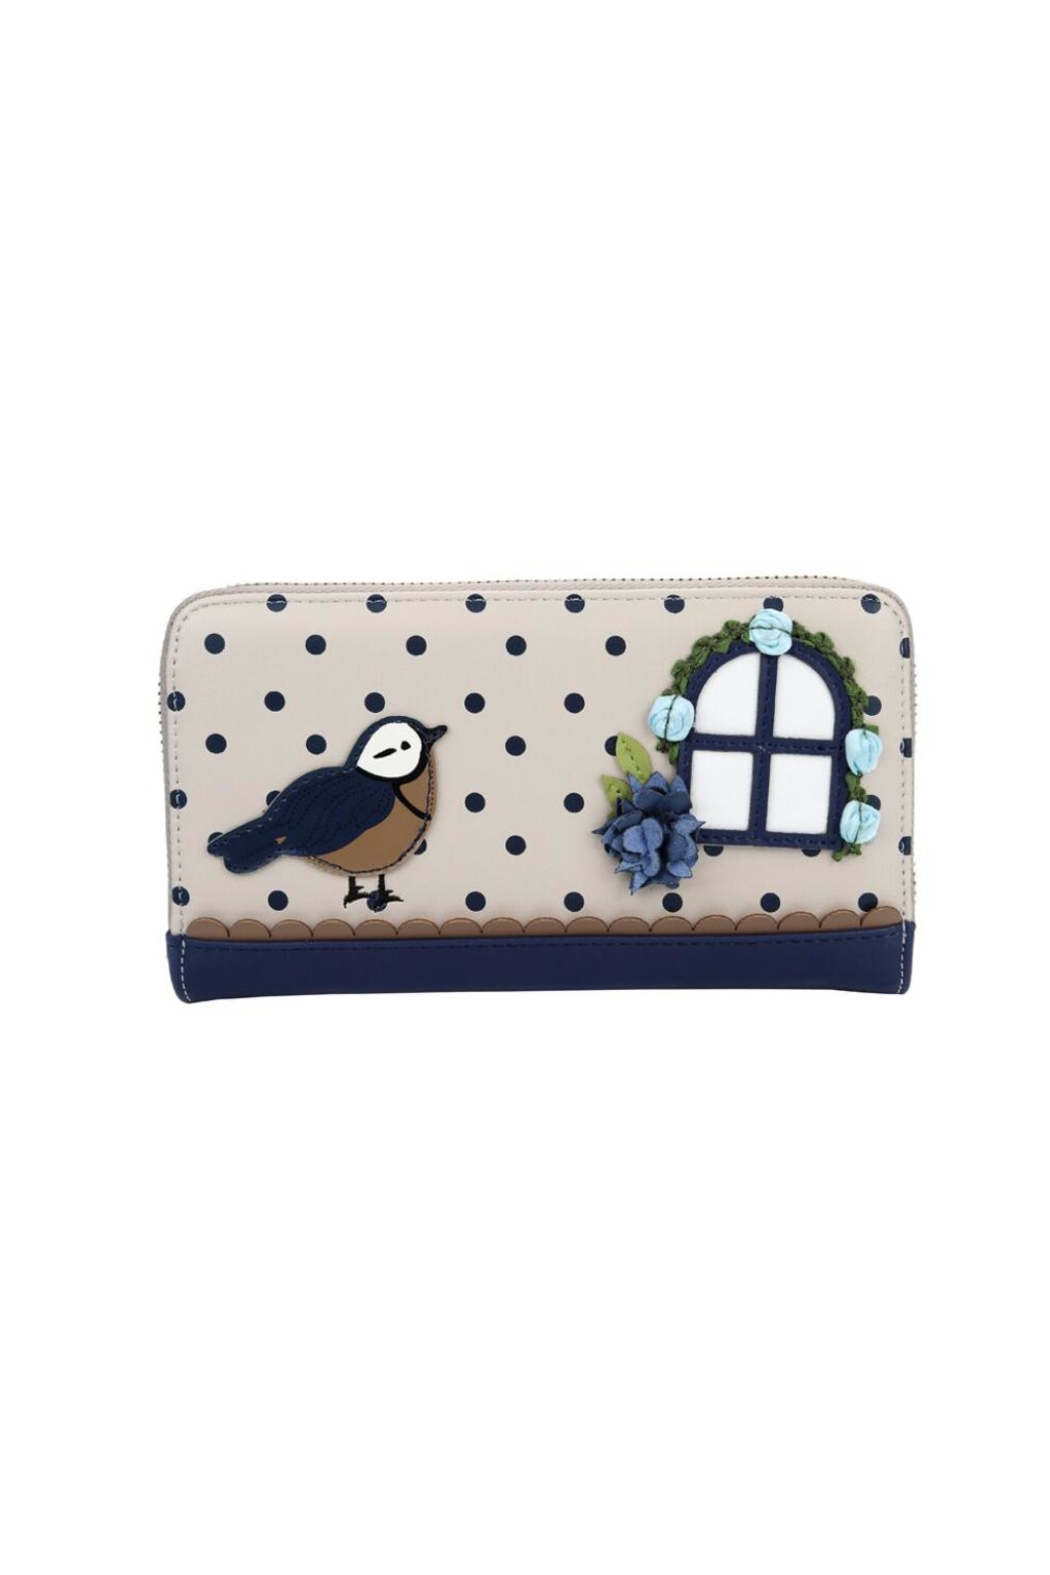 Vendula London Birdhouse Zip-Around Wallet - Main Image